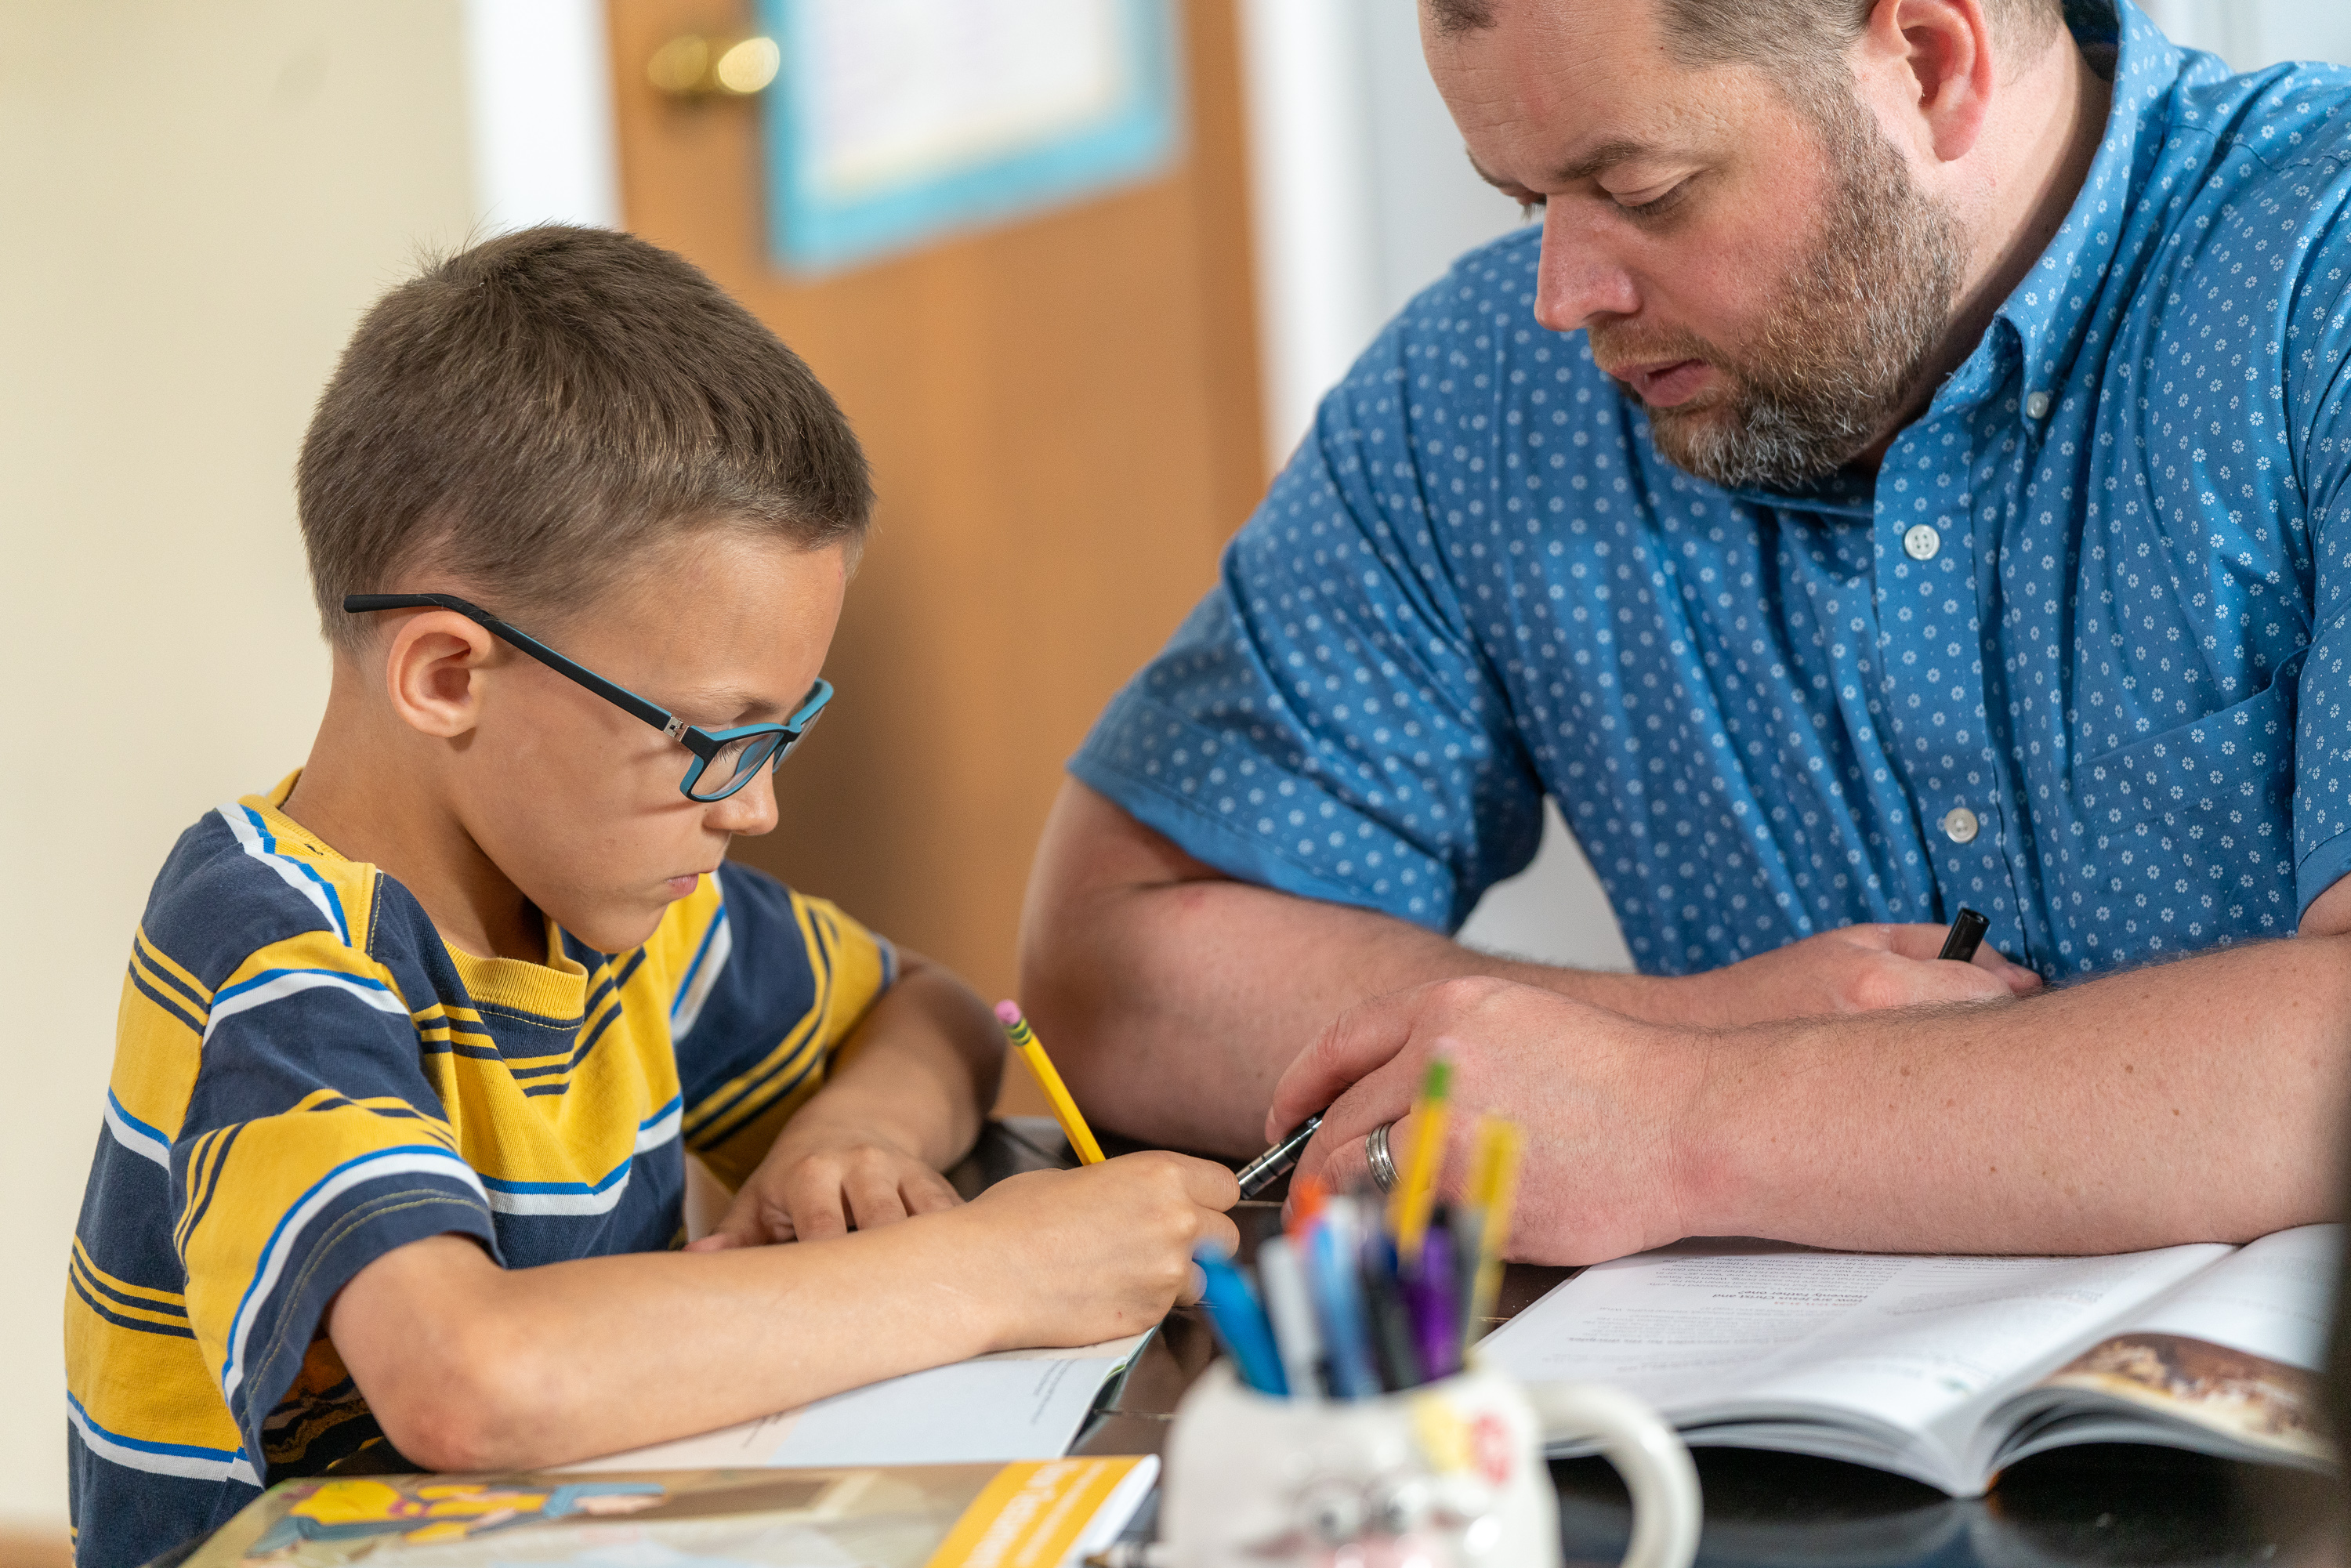 Peter, a 9-year-old from a pilot stake in Columbus, Ohio, practices reading and writing with his father. As part of the Children and Youth program, Peter set a goal to pass his reading test at school.